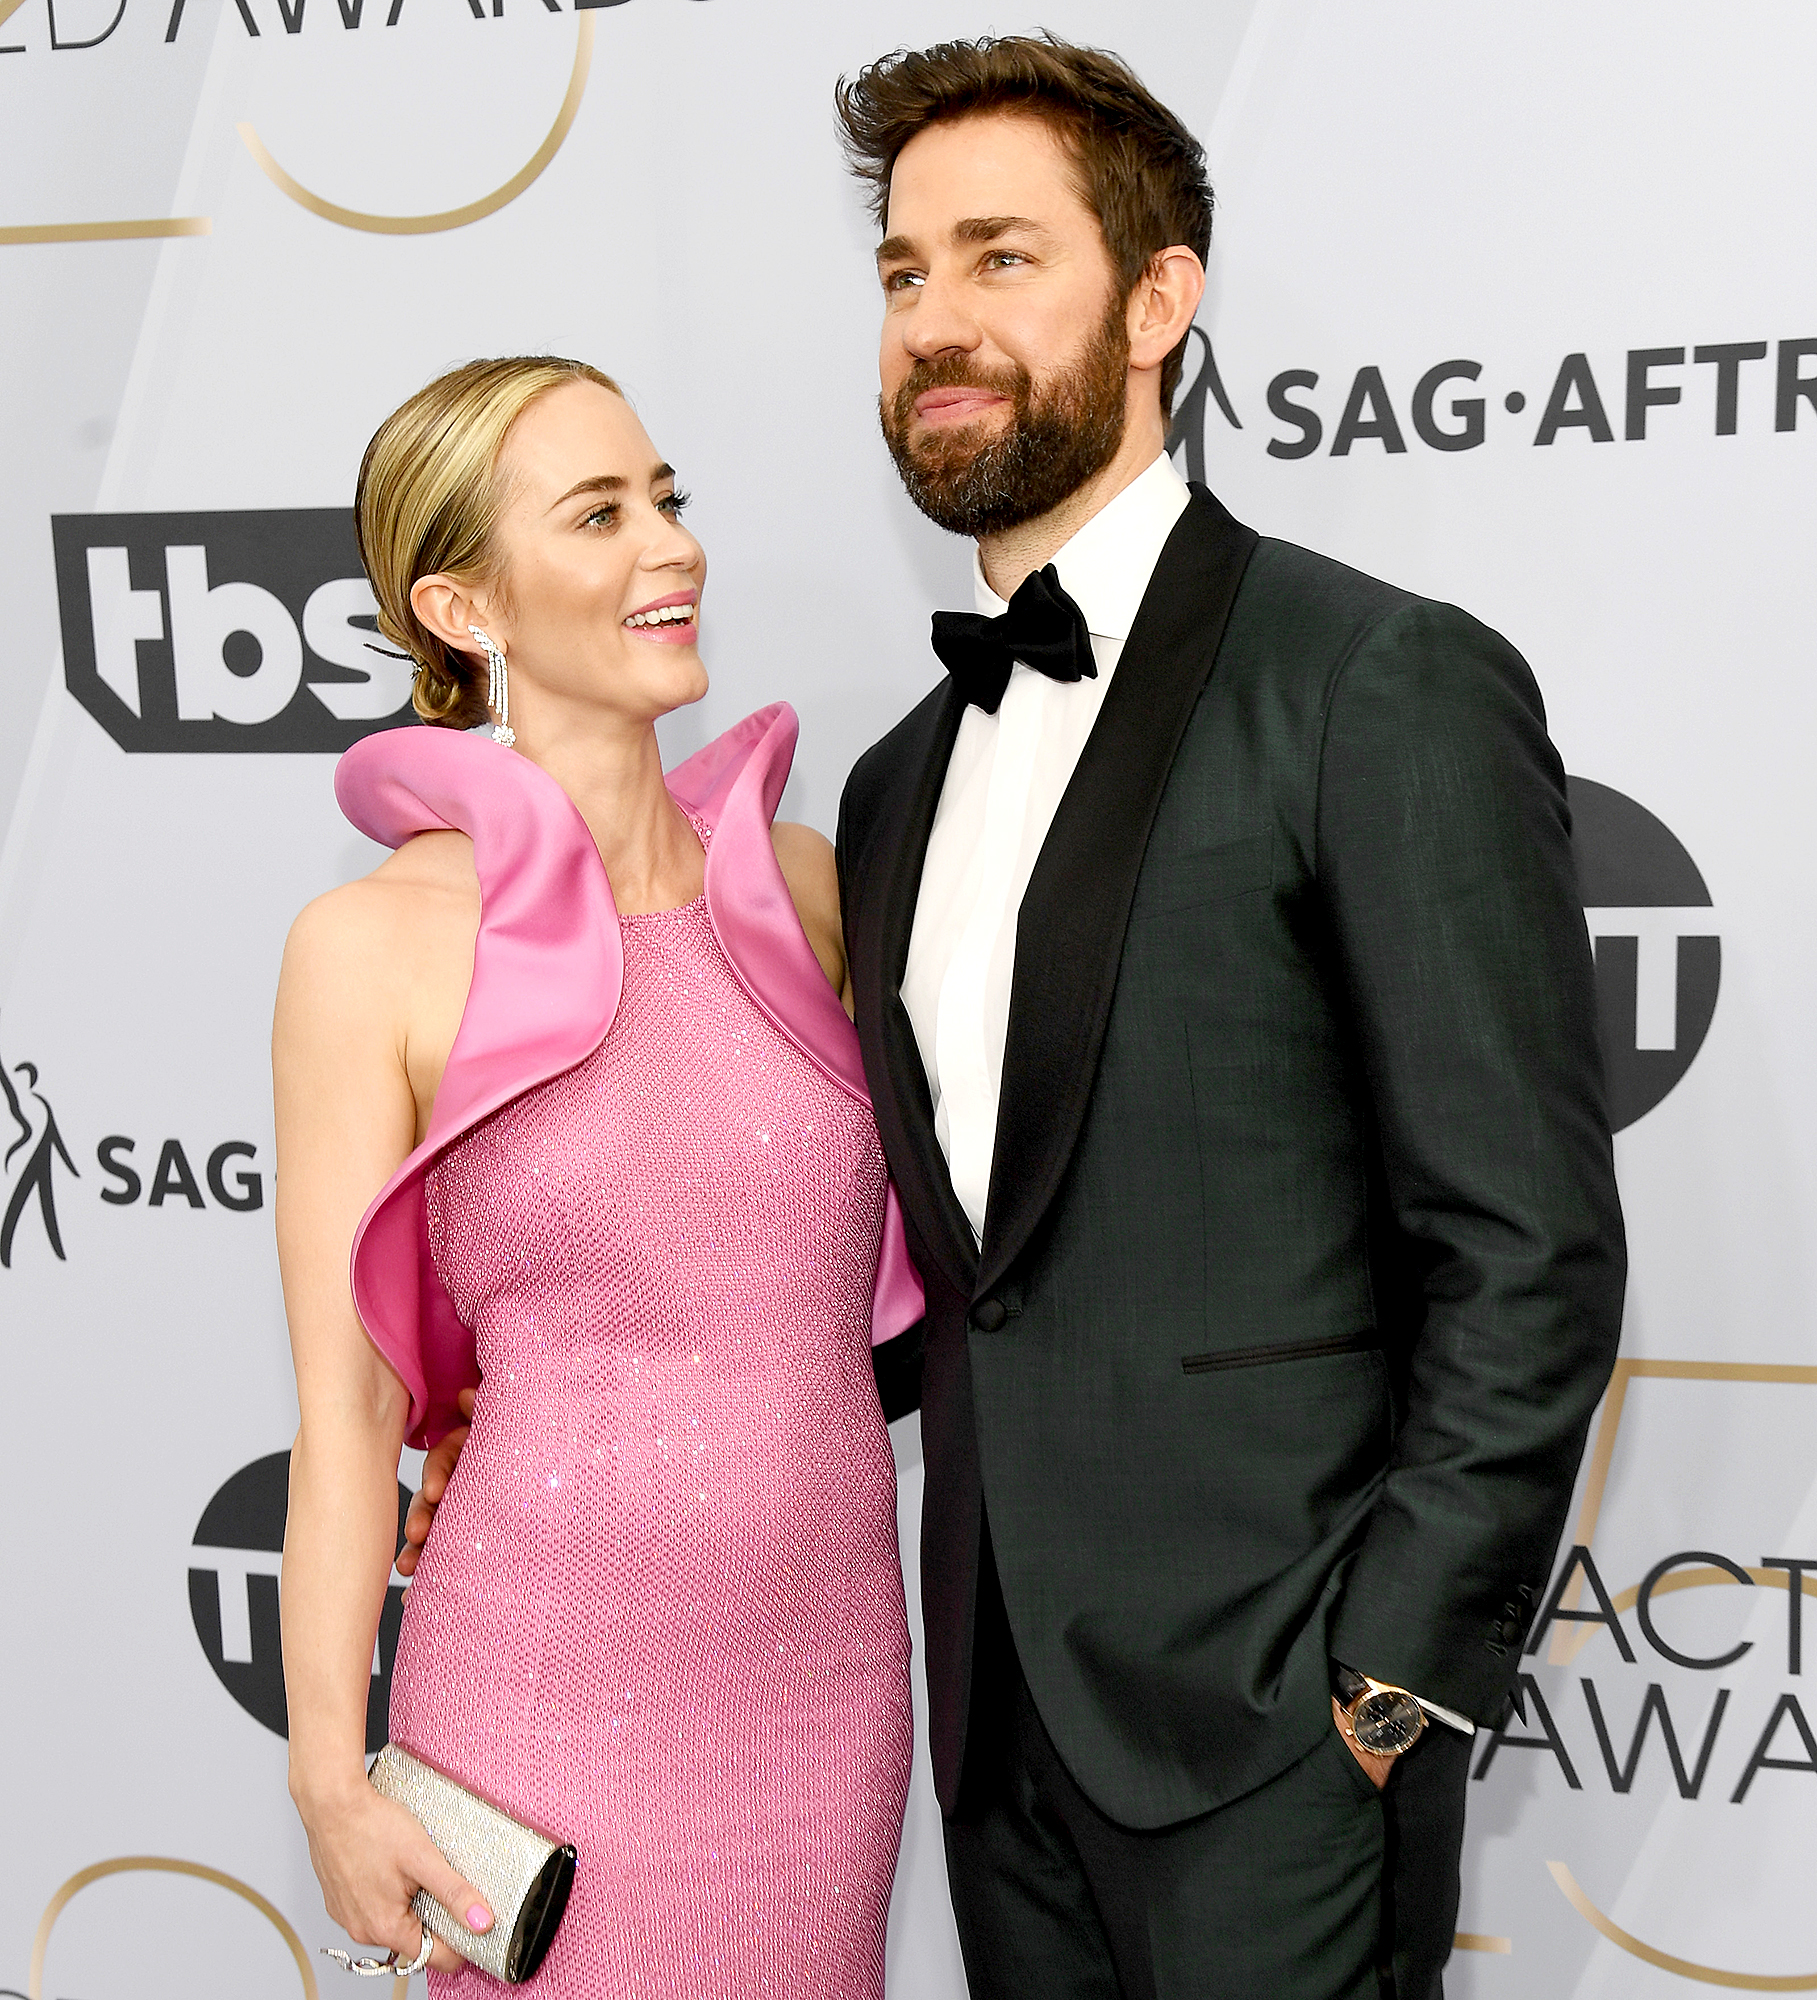 """John-Krasinski-and-Emily-Blunt-love-quotes - """"Oh, my goodness me. Guys, that truly has completely blown my slicked hair back,"""" Blunt said during her acceptance speech at the 2019 SAG Awards while Krasinski watched from the audience with tears in his eyes. """"I am going to share this completely with my husband, John, because the entire experience of doing this with you has completely pierced my heart directly. You are a stunning filmmaker. I am so lucky to be with you and to have done this film with you."""""""